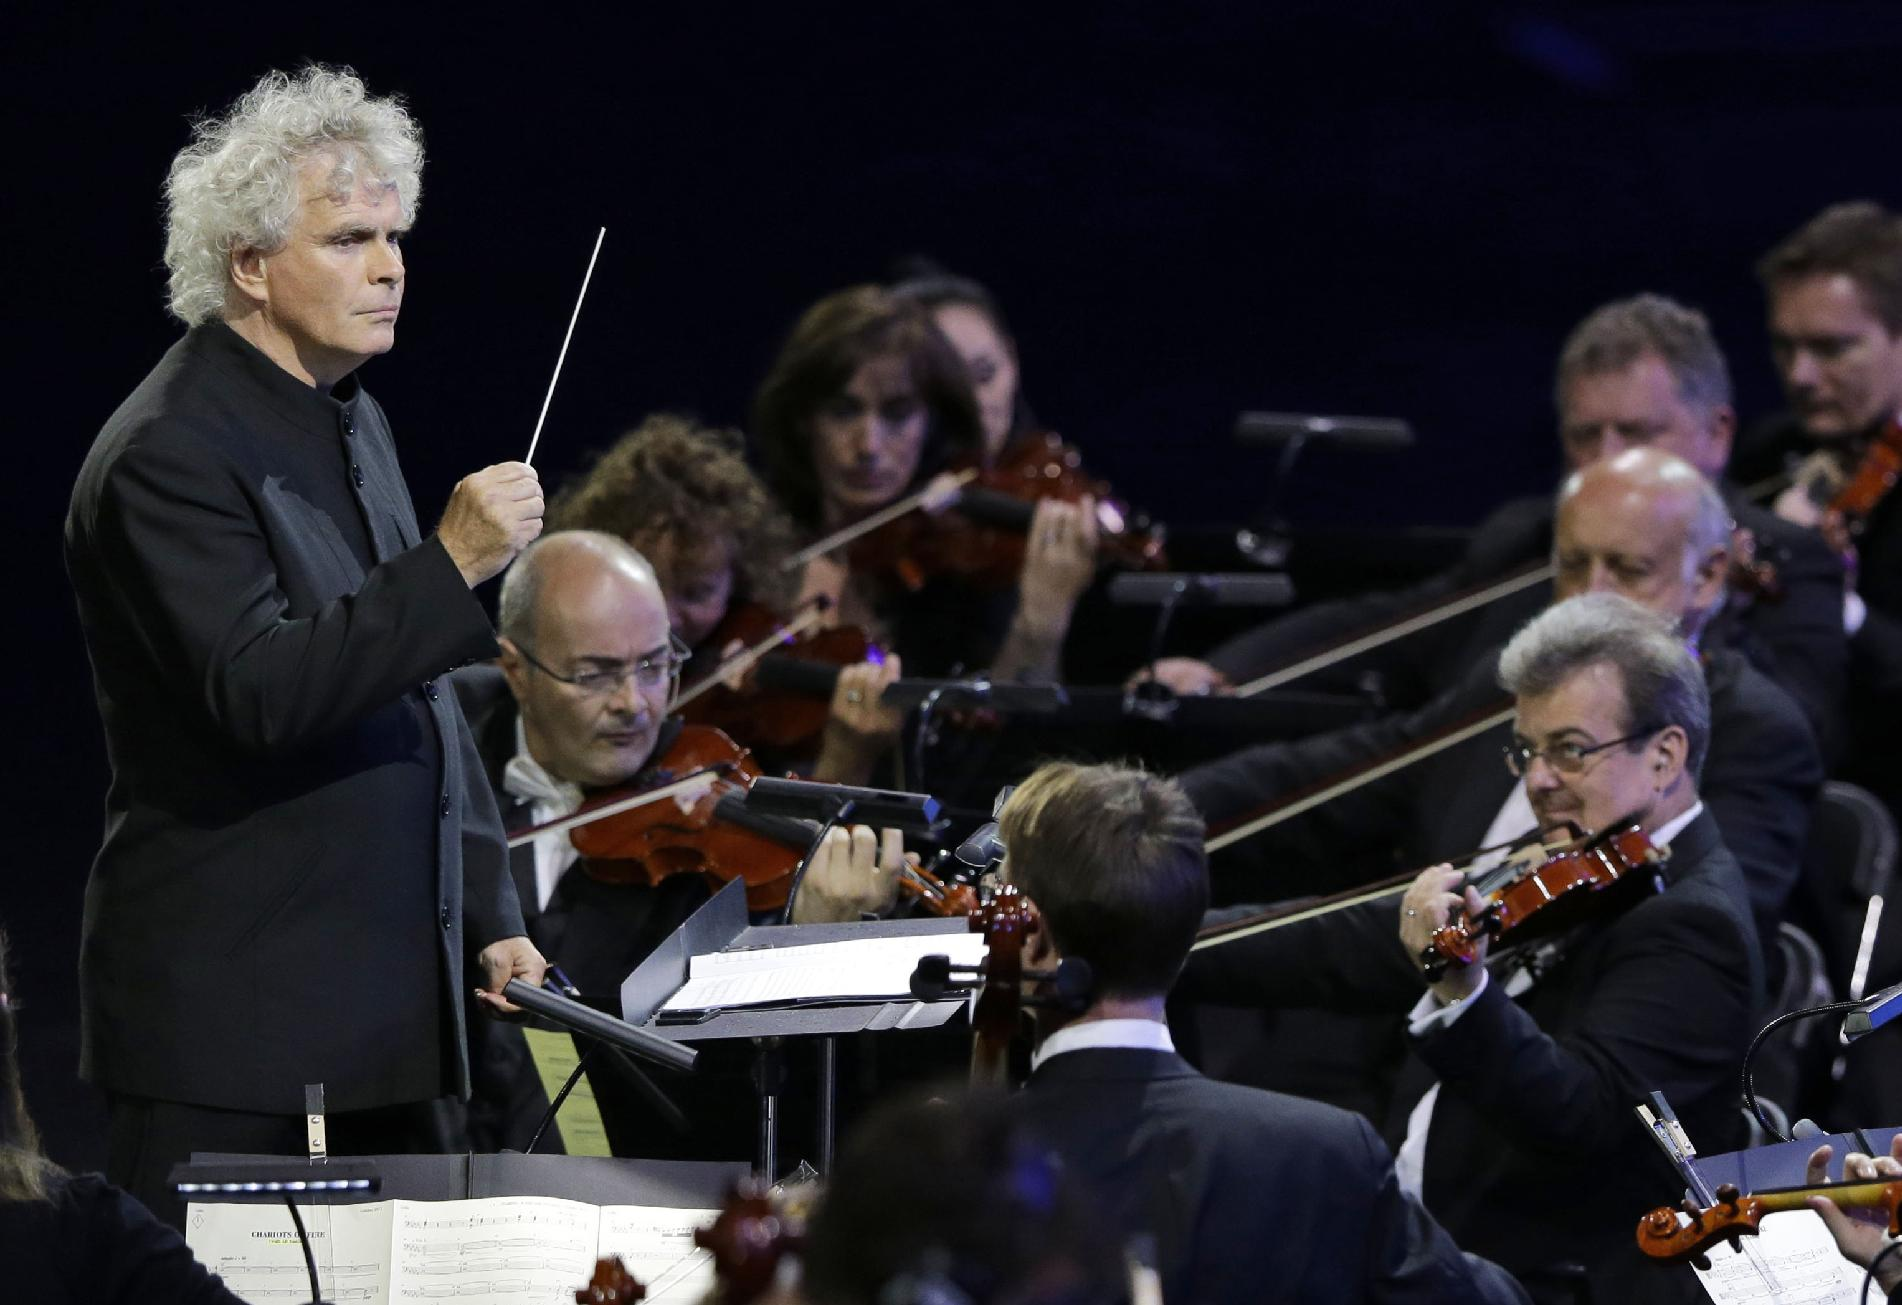 Simon Rattle named music director of London Symphony